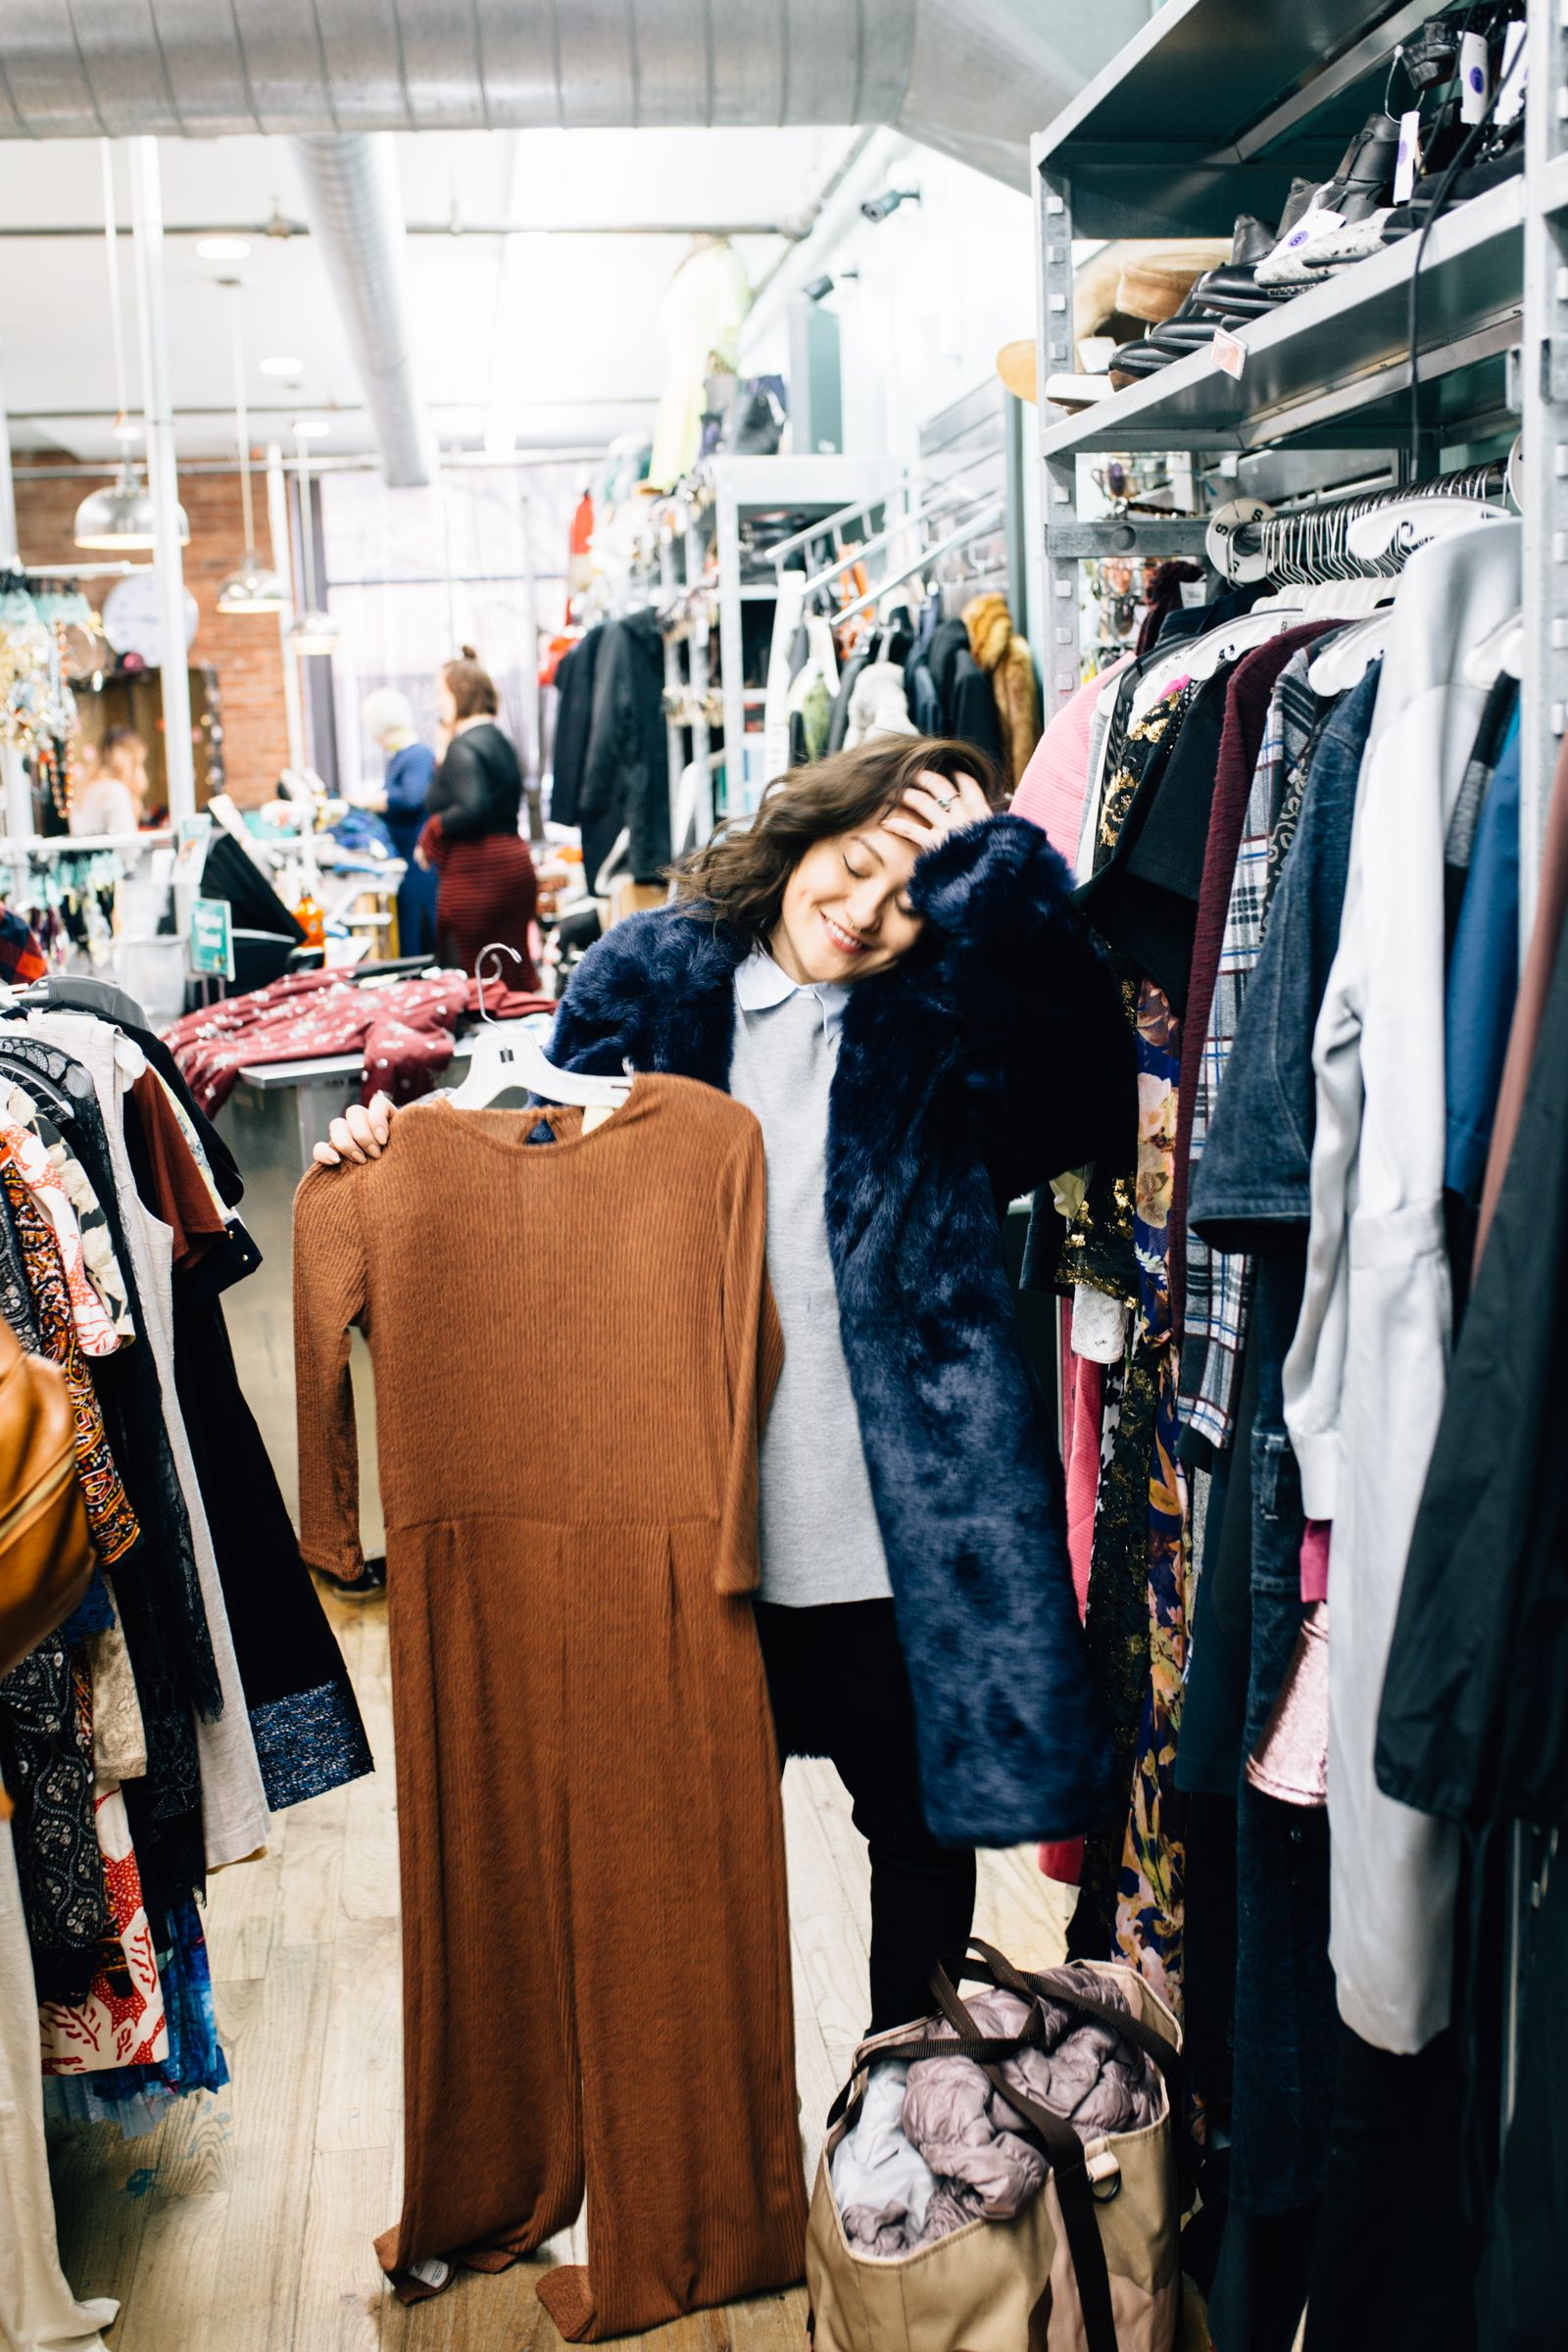 e16d86e46d1 Jumpsuit magic found in Buffalo Exchange! Vintage photoshoot in a thrift  store Williamsburg fashion photoshoot new york brooklyn photographer